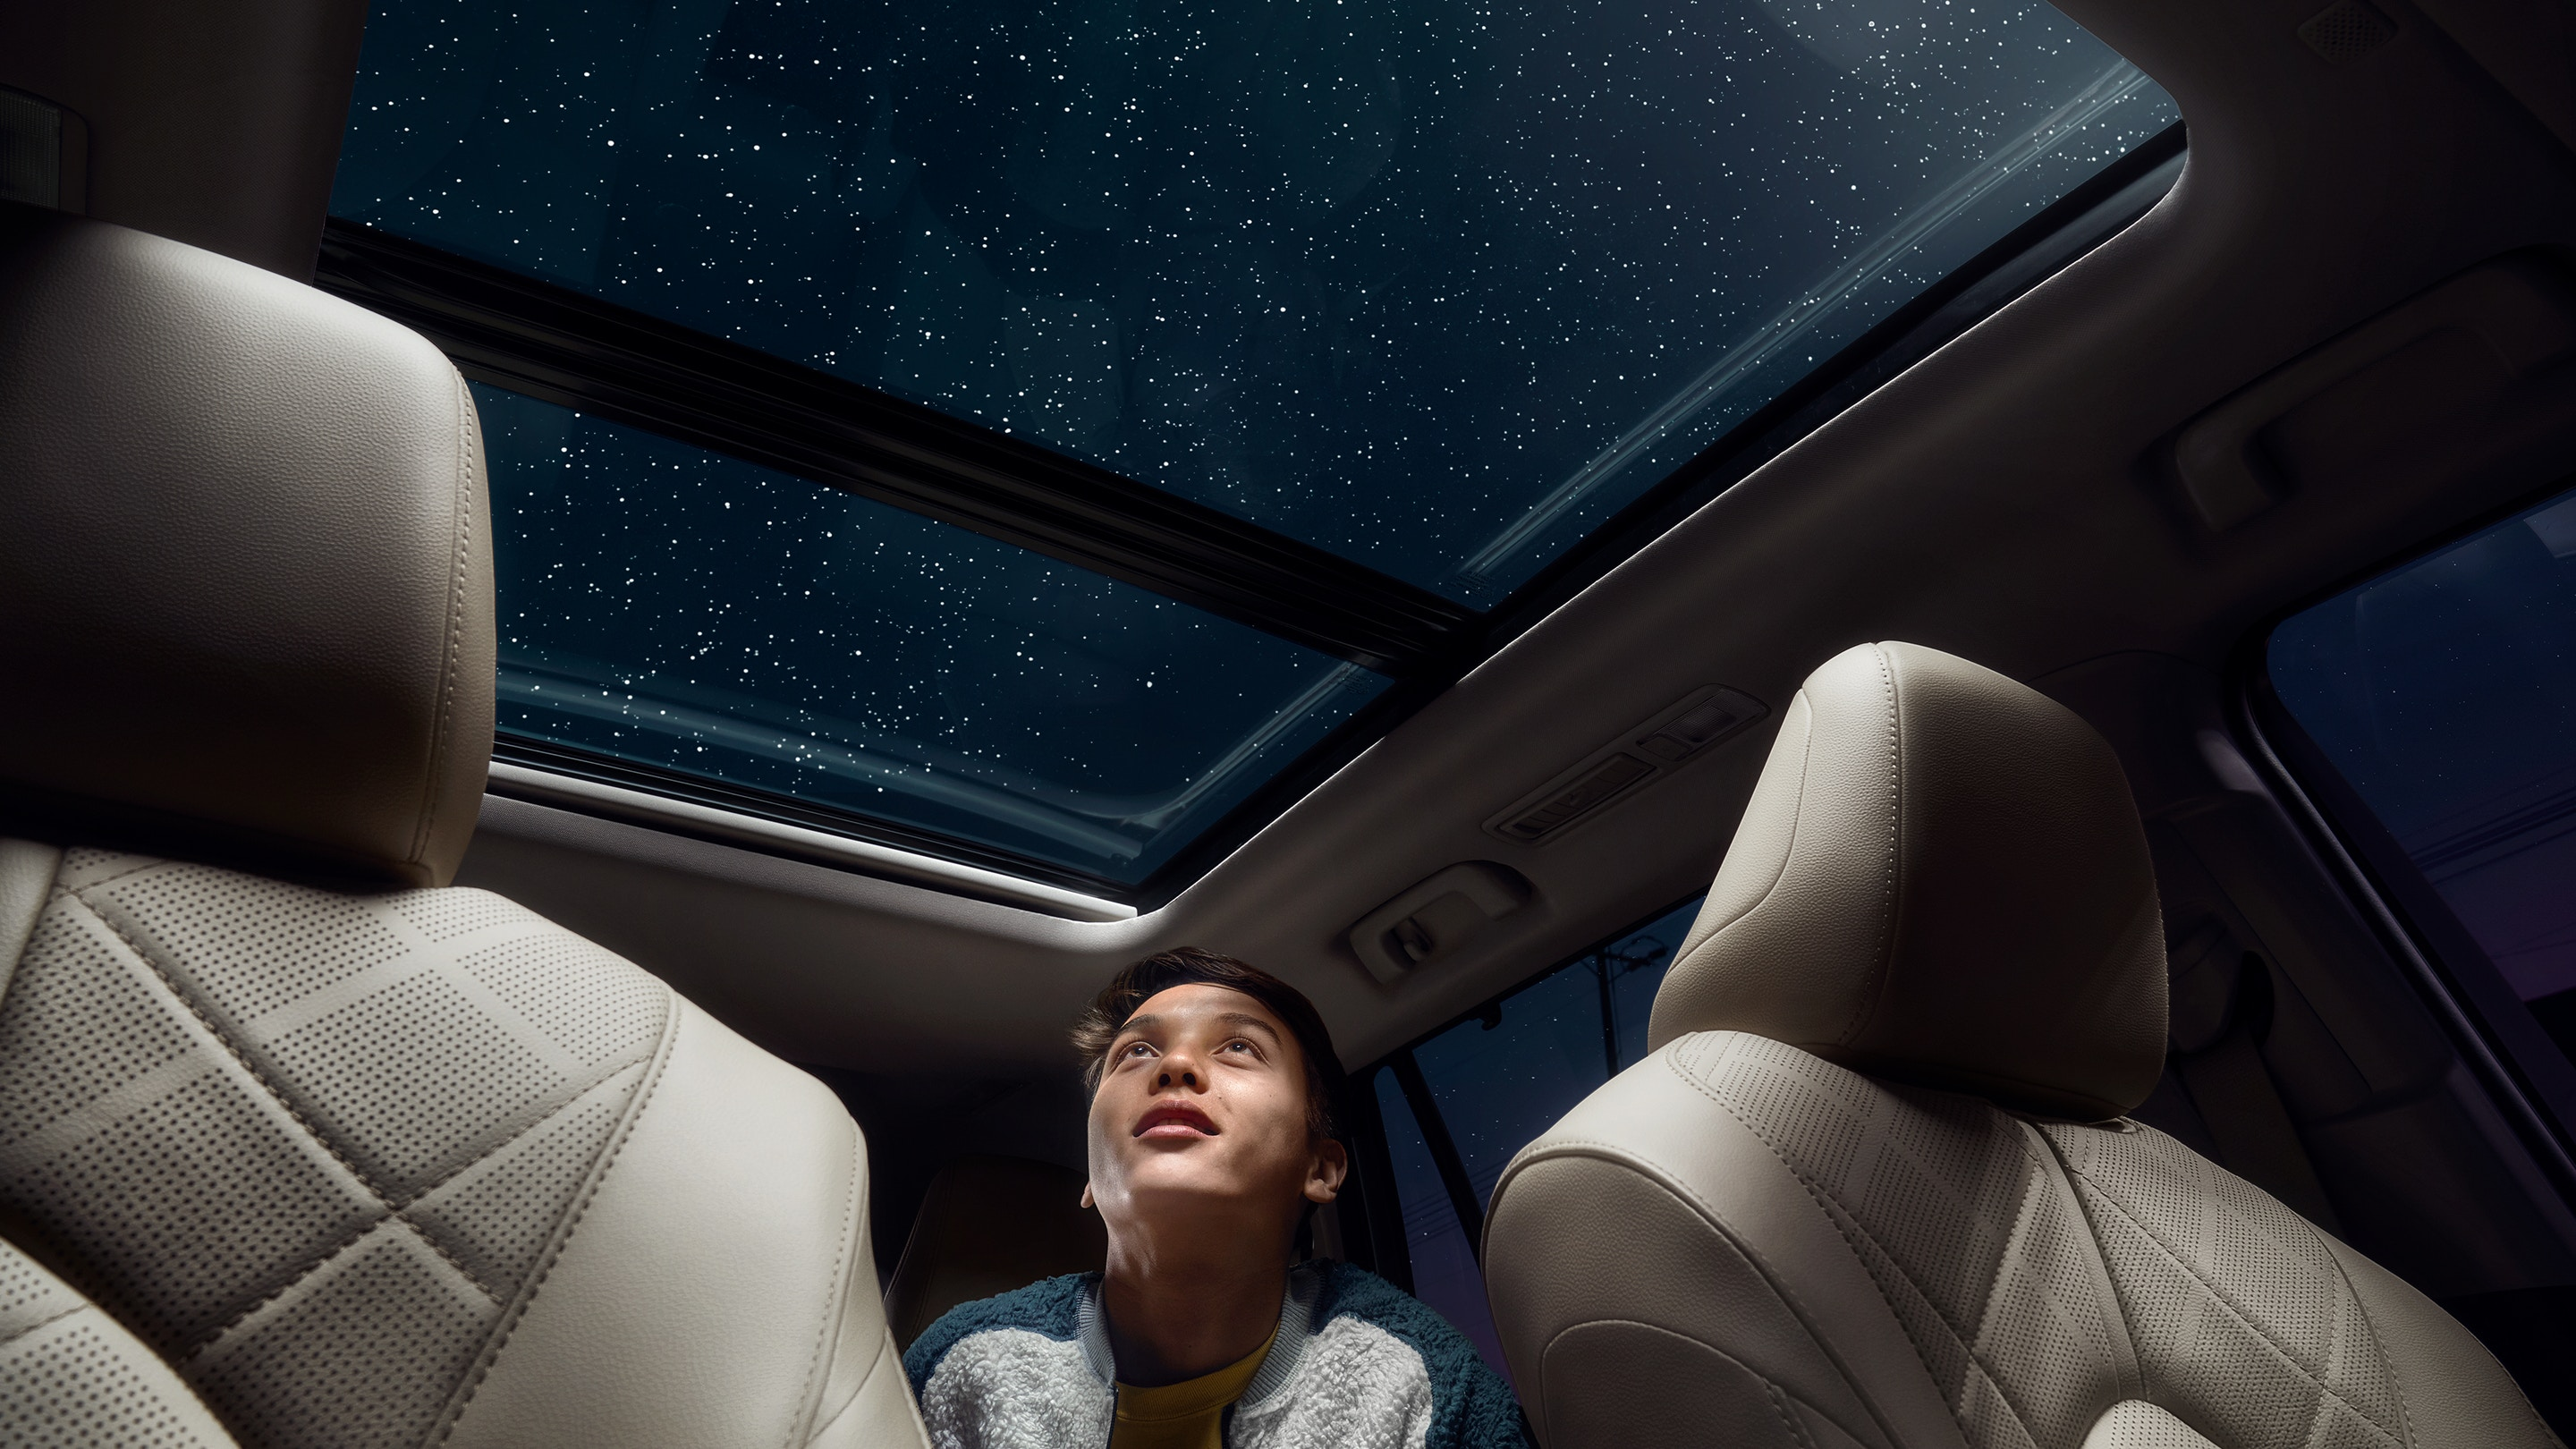 Sunroof in the 2020 Highlander